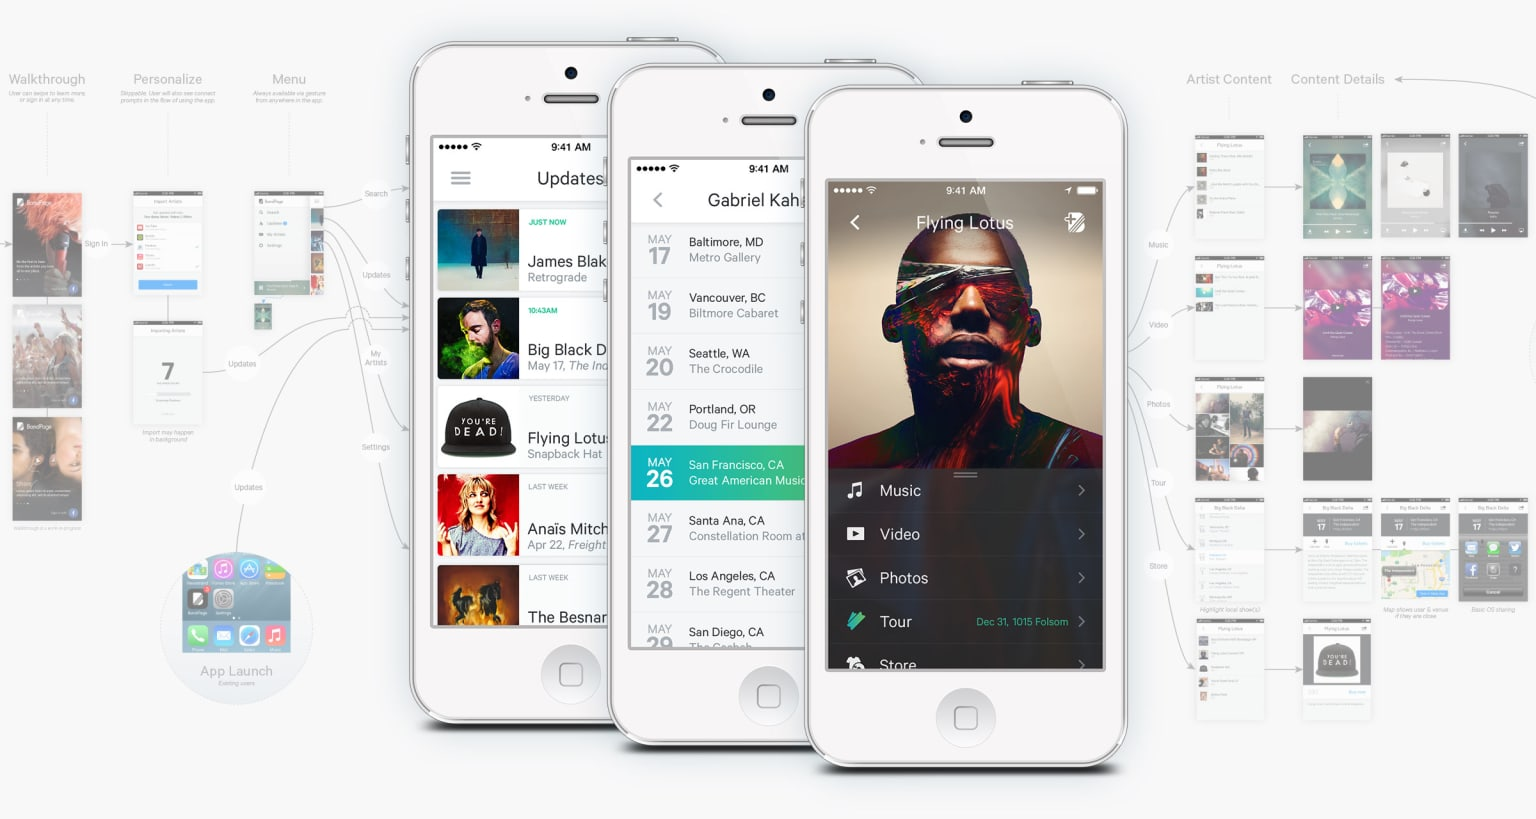 BandPage App - Find, Follow & Share